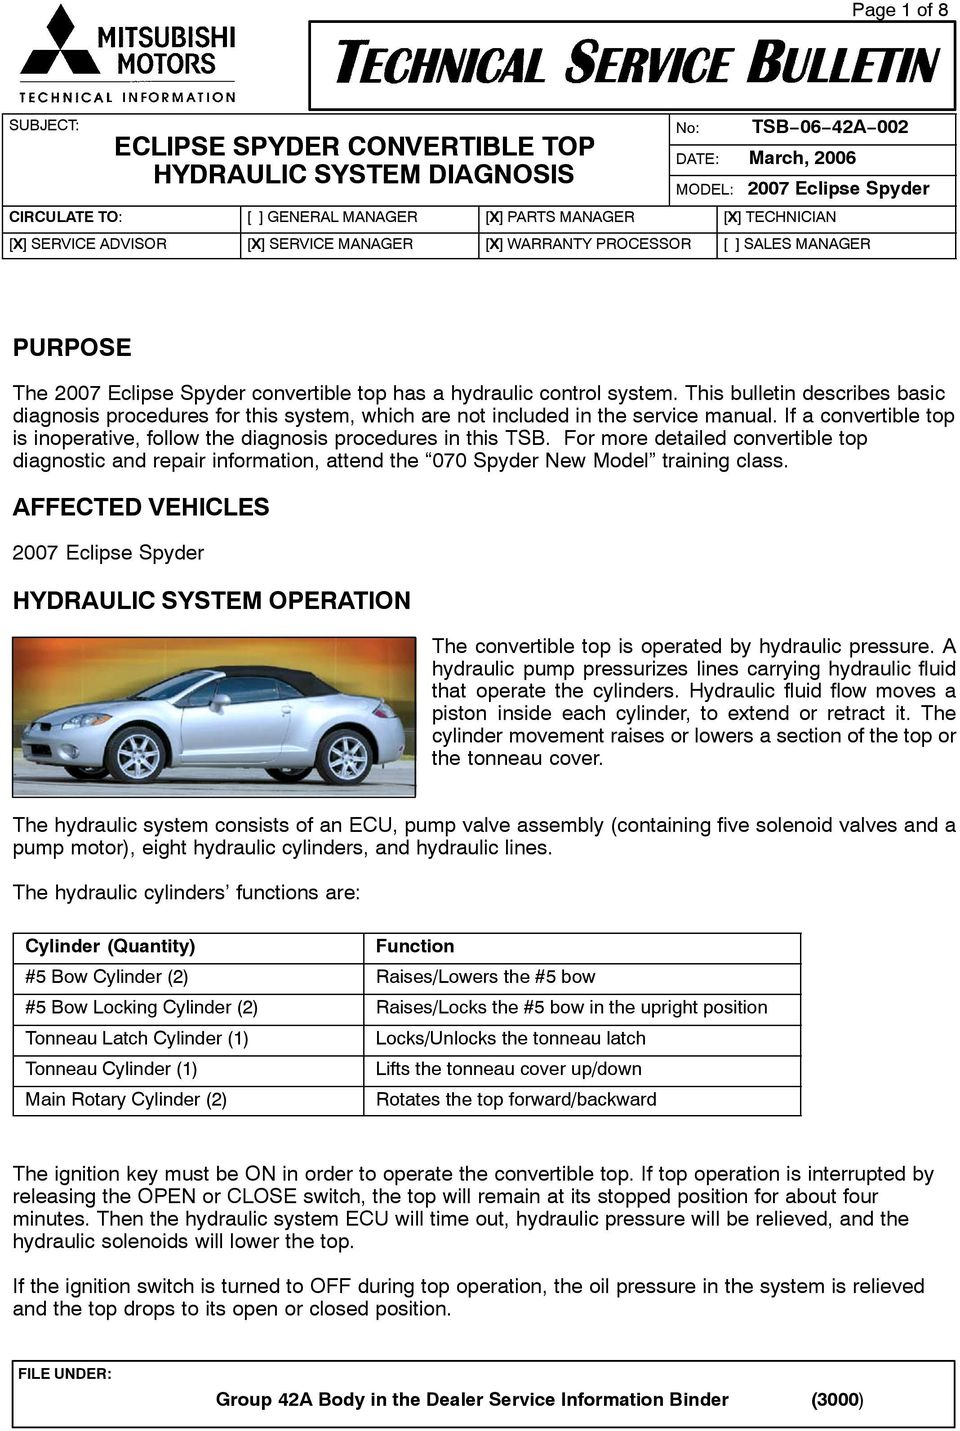 Eclipse Spyder Convertible Top Hydraulic System Diagnosis Pdf Vw New Beetle Parts As Well Jetta Fuse Box Diagram This Bulletin Describes Basic Procedures For Which Are Not Included In The